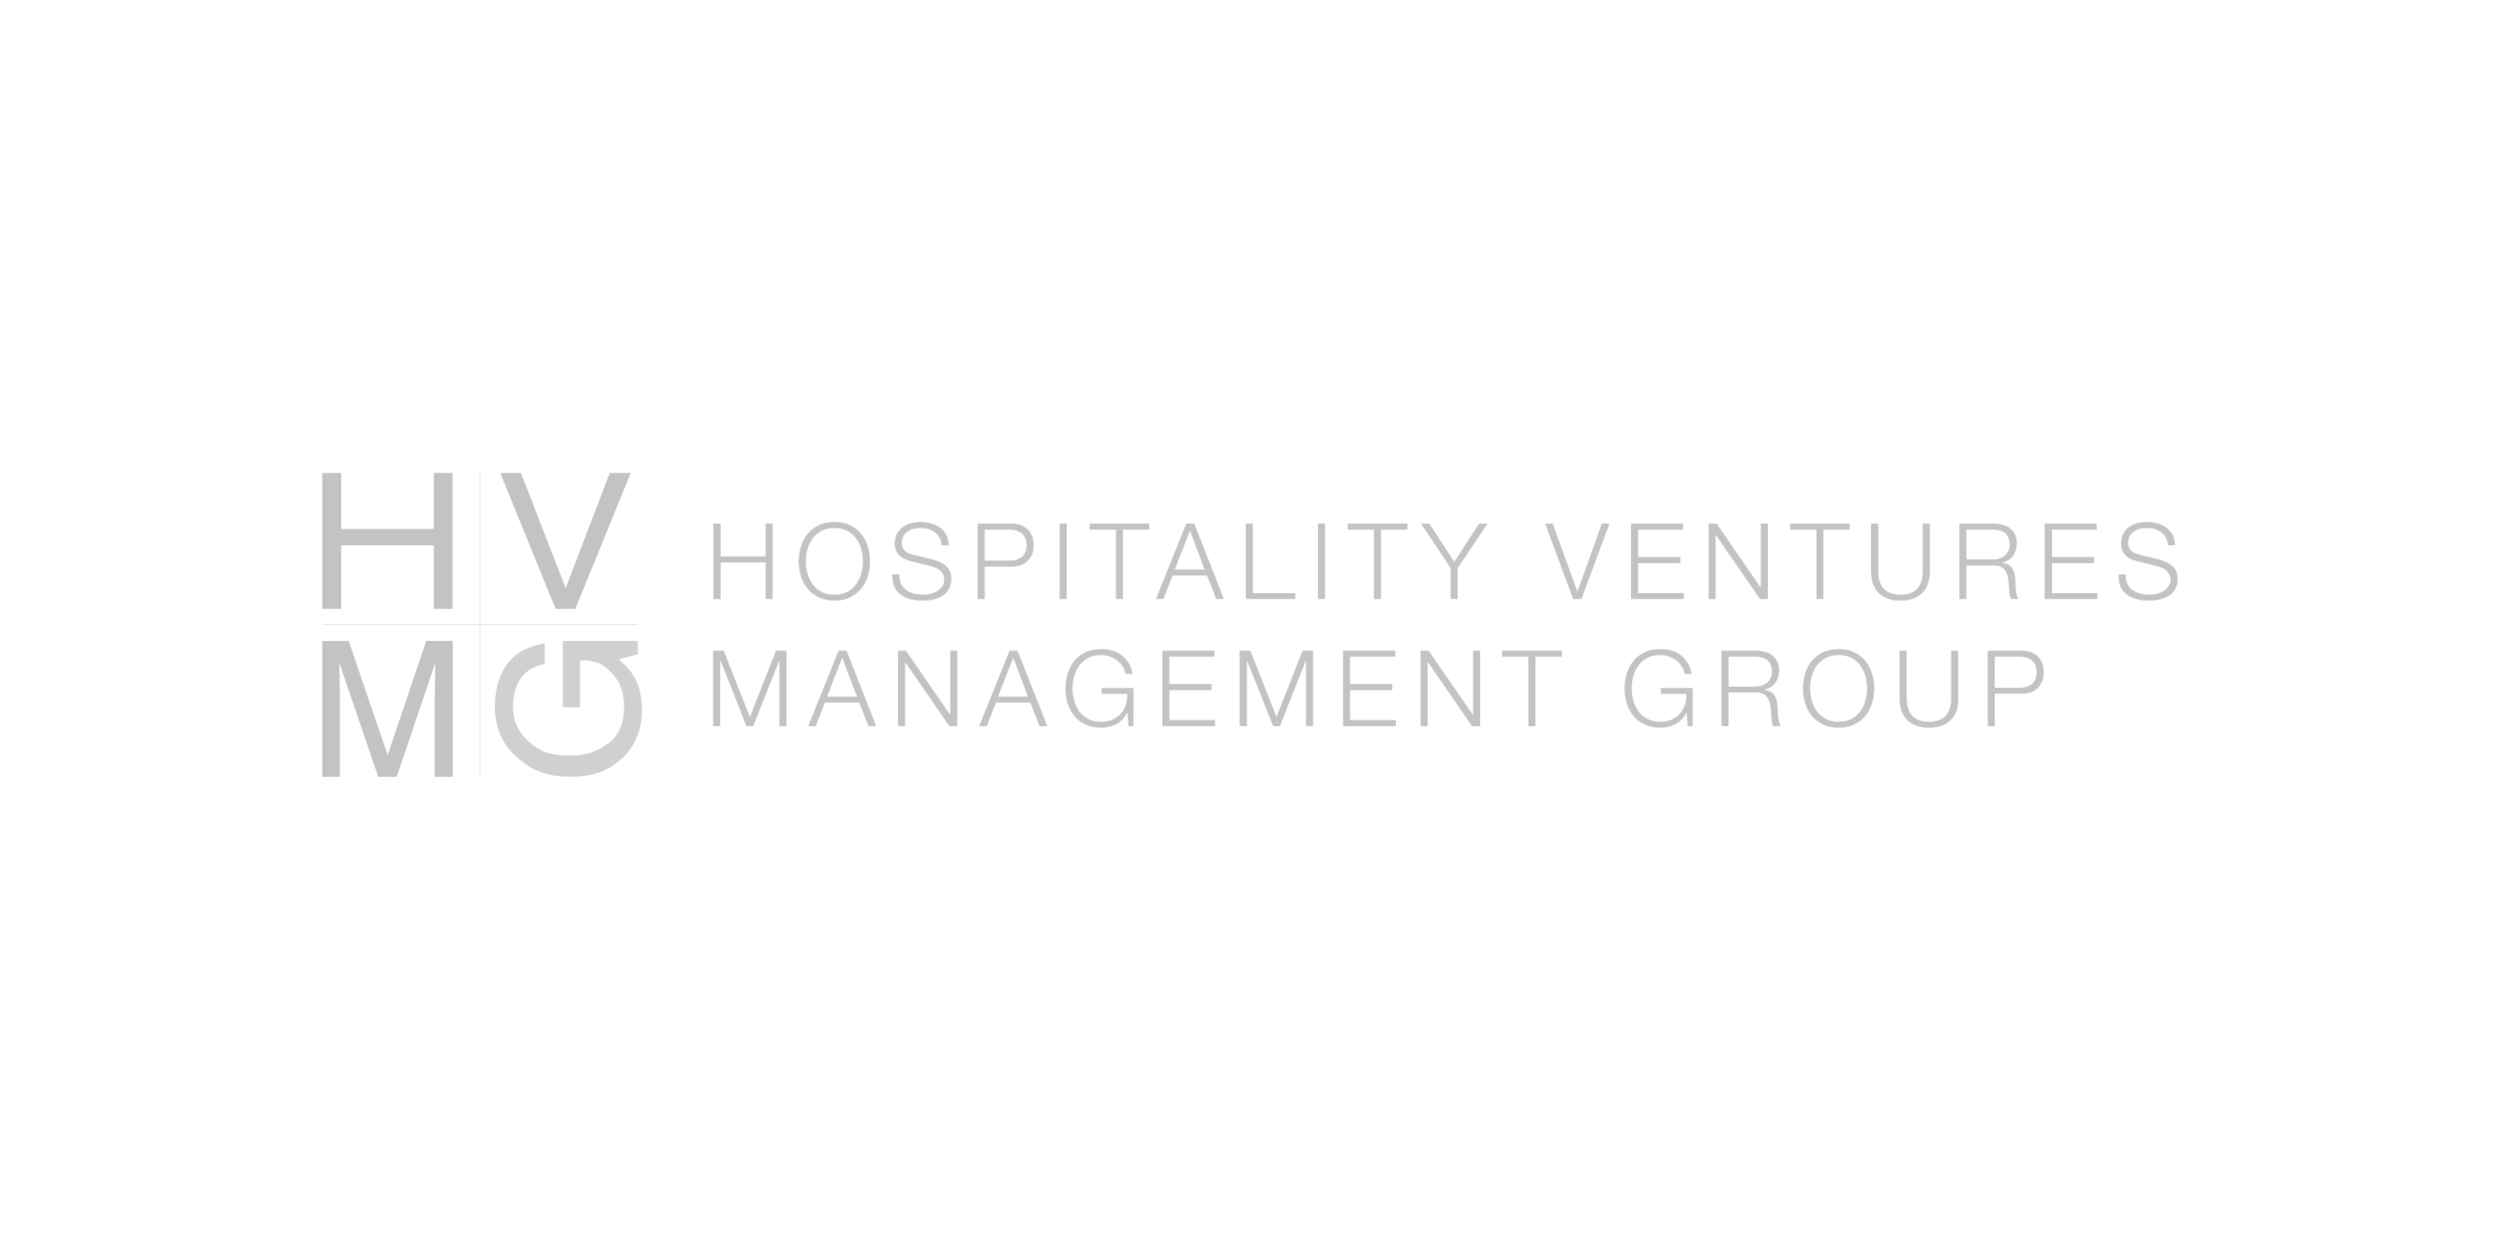 HVMG sets the hospitality industry standard of excellence as an employer, operator, and trusted partner. Our commitment to our Purpose – Be Excellent in all we do so that our associates, guests, and partners LOVE us! – drives us to provide hotel solutions with uncompromised quality and integrity.   Led by a team of hospitality management and real estate experts who have successfully maximized results together for more than 15 years, our fully integrated platform of hotel solutions ranges from third-party management to acquisitions and development to project management. HVMG prides itself on being one of only a small percentage of 3rd Party Managers approved to manage all major full service brands: Hyatt, Hilton, IHG, Marriott & Starwood.  HVMG's formula for success relies on cultivating the talent necessary to achieving premium performance to support growth and investing in development relationships. Whether we're acting as third-party manager, joint-venture partner or just as an advisor, HVMG thrives on solving complex challenges with proven strategies that focus on maximizing value.